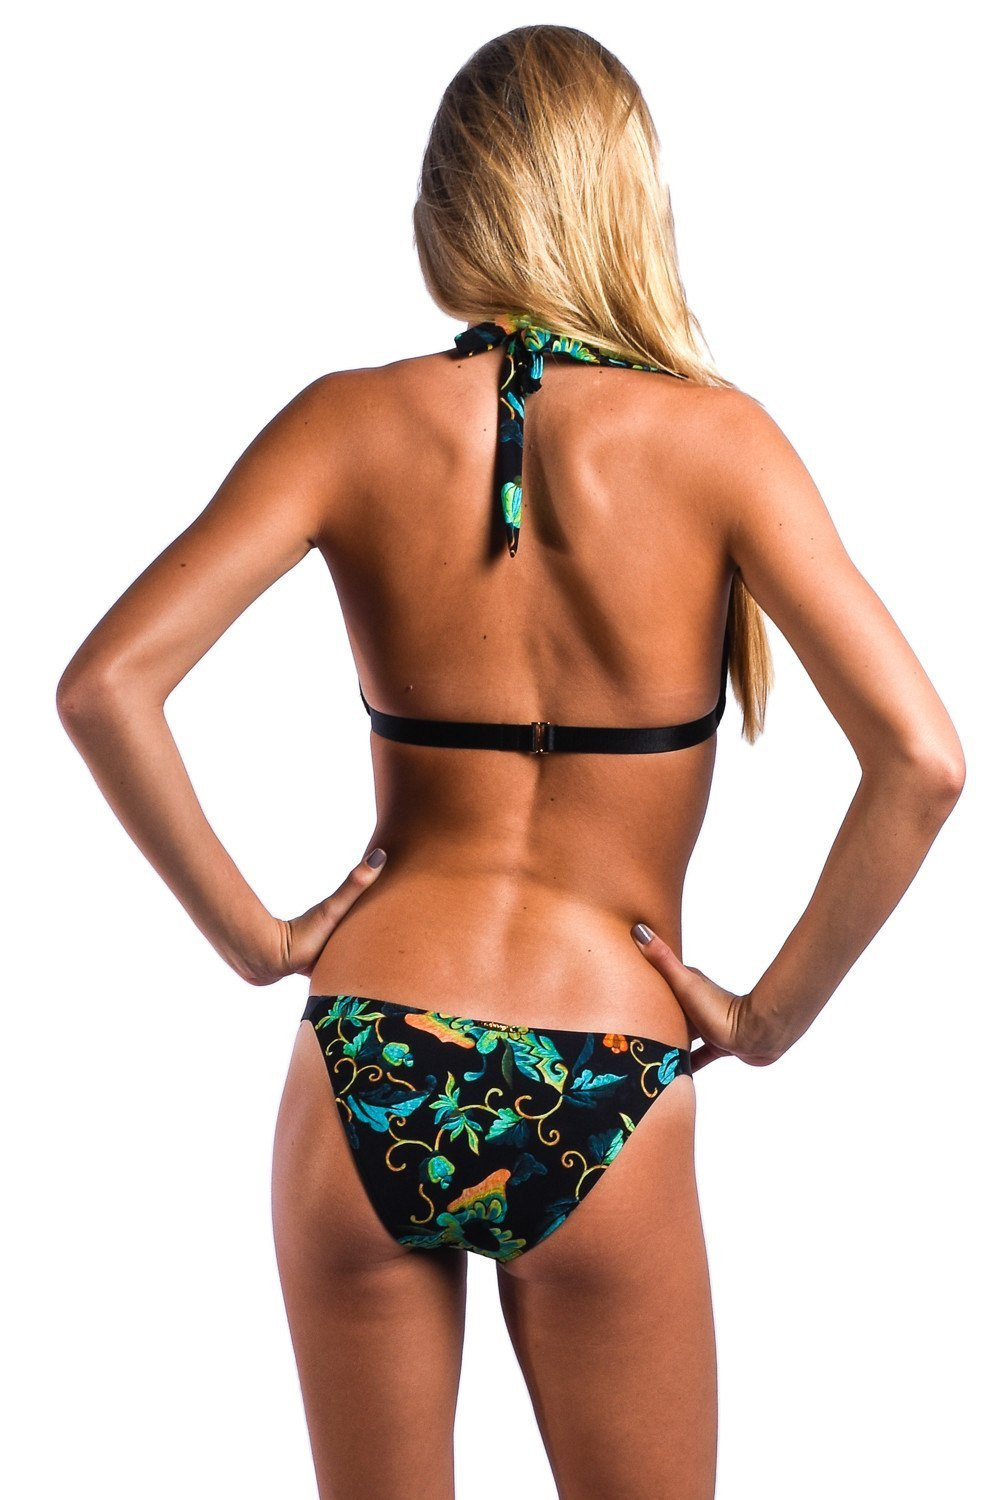 Sauvage Swimwear, Designer Swimwear from San Diego, CA made in usaBlack Orchid Bikini, , Swim, sauvage swimwear, Sauvage - 6